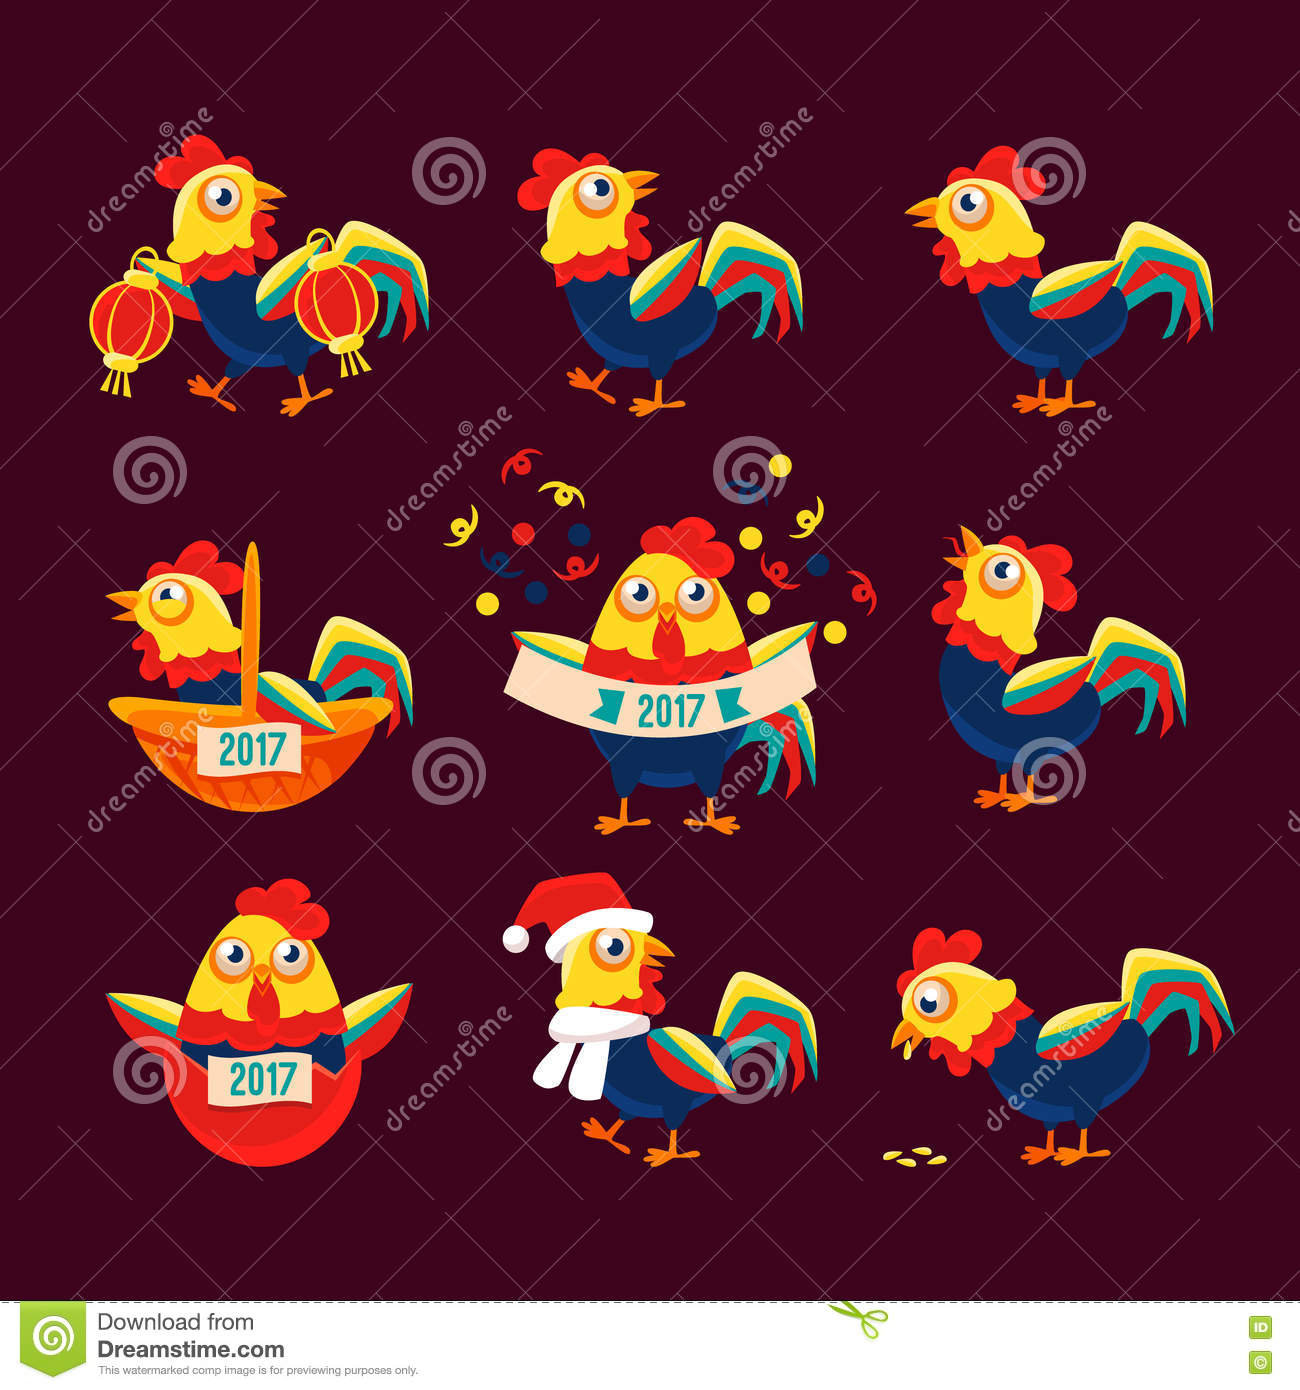 Rooster cartoon character set with a representing chinese zodiac rooster cartoon character set with a representing chinese zodiac symbol of new year 2017 buycottarizona Images